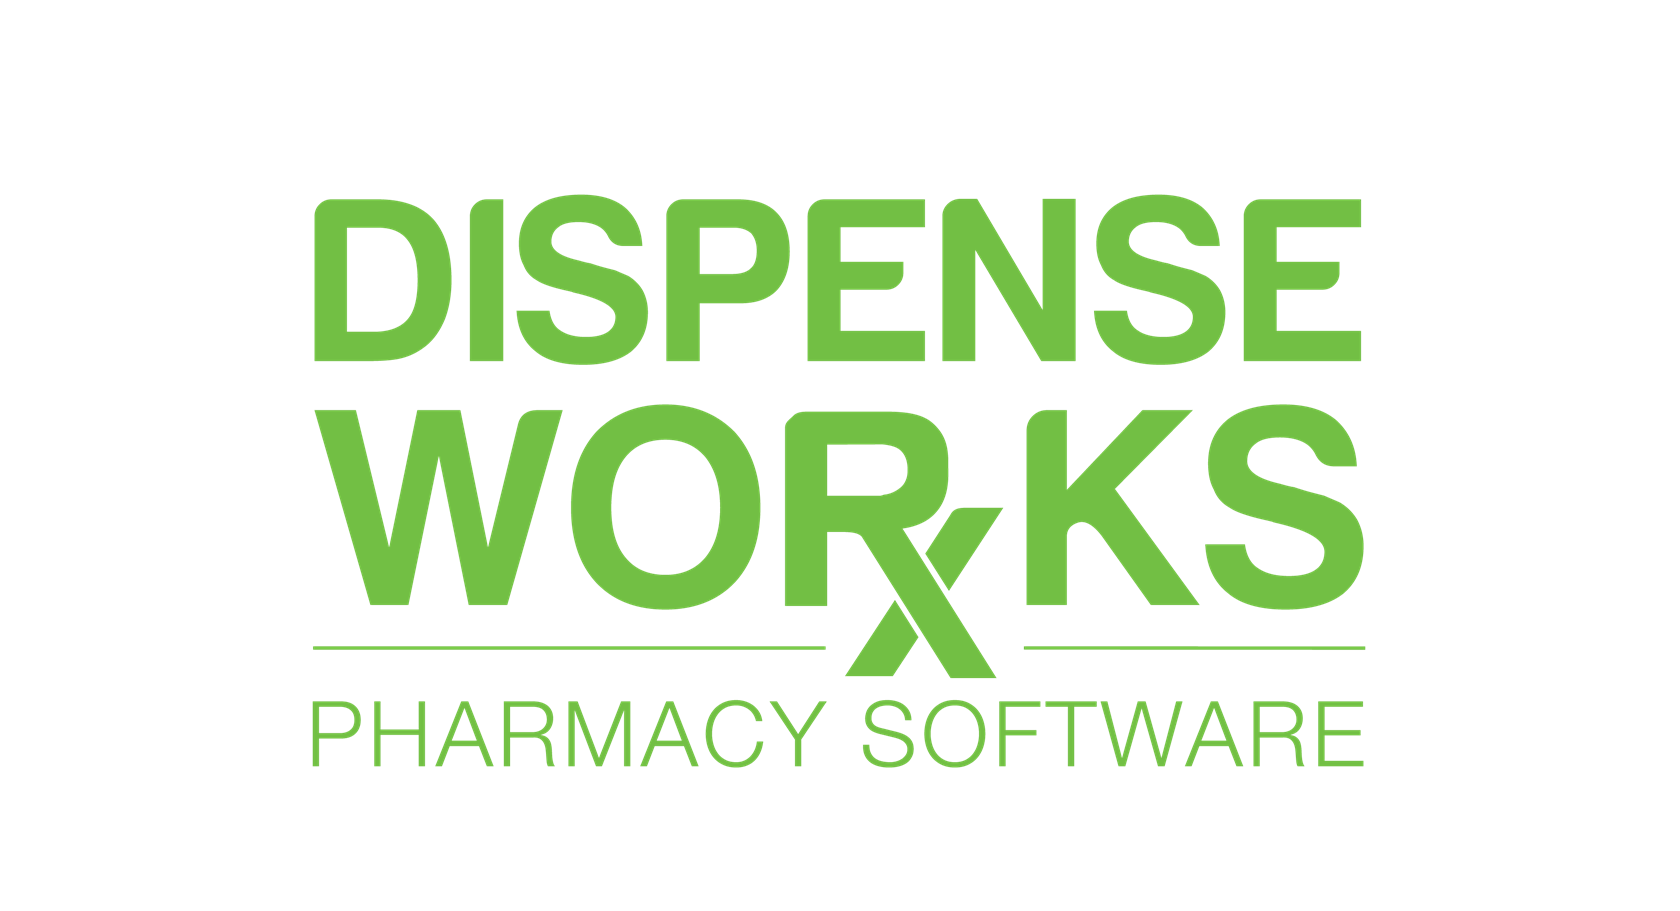 Dispense Works Pharmacy Software